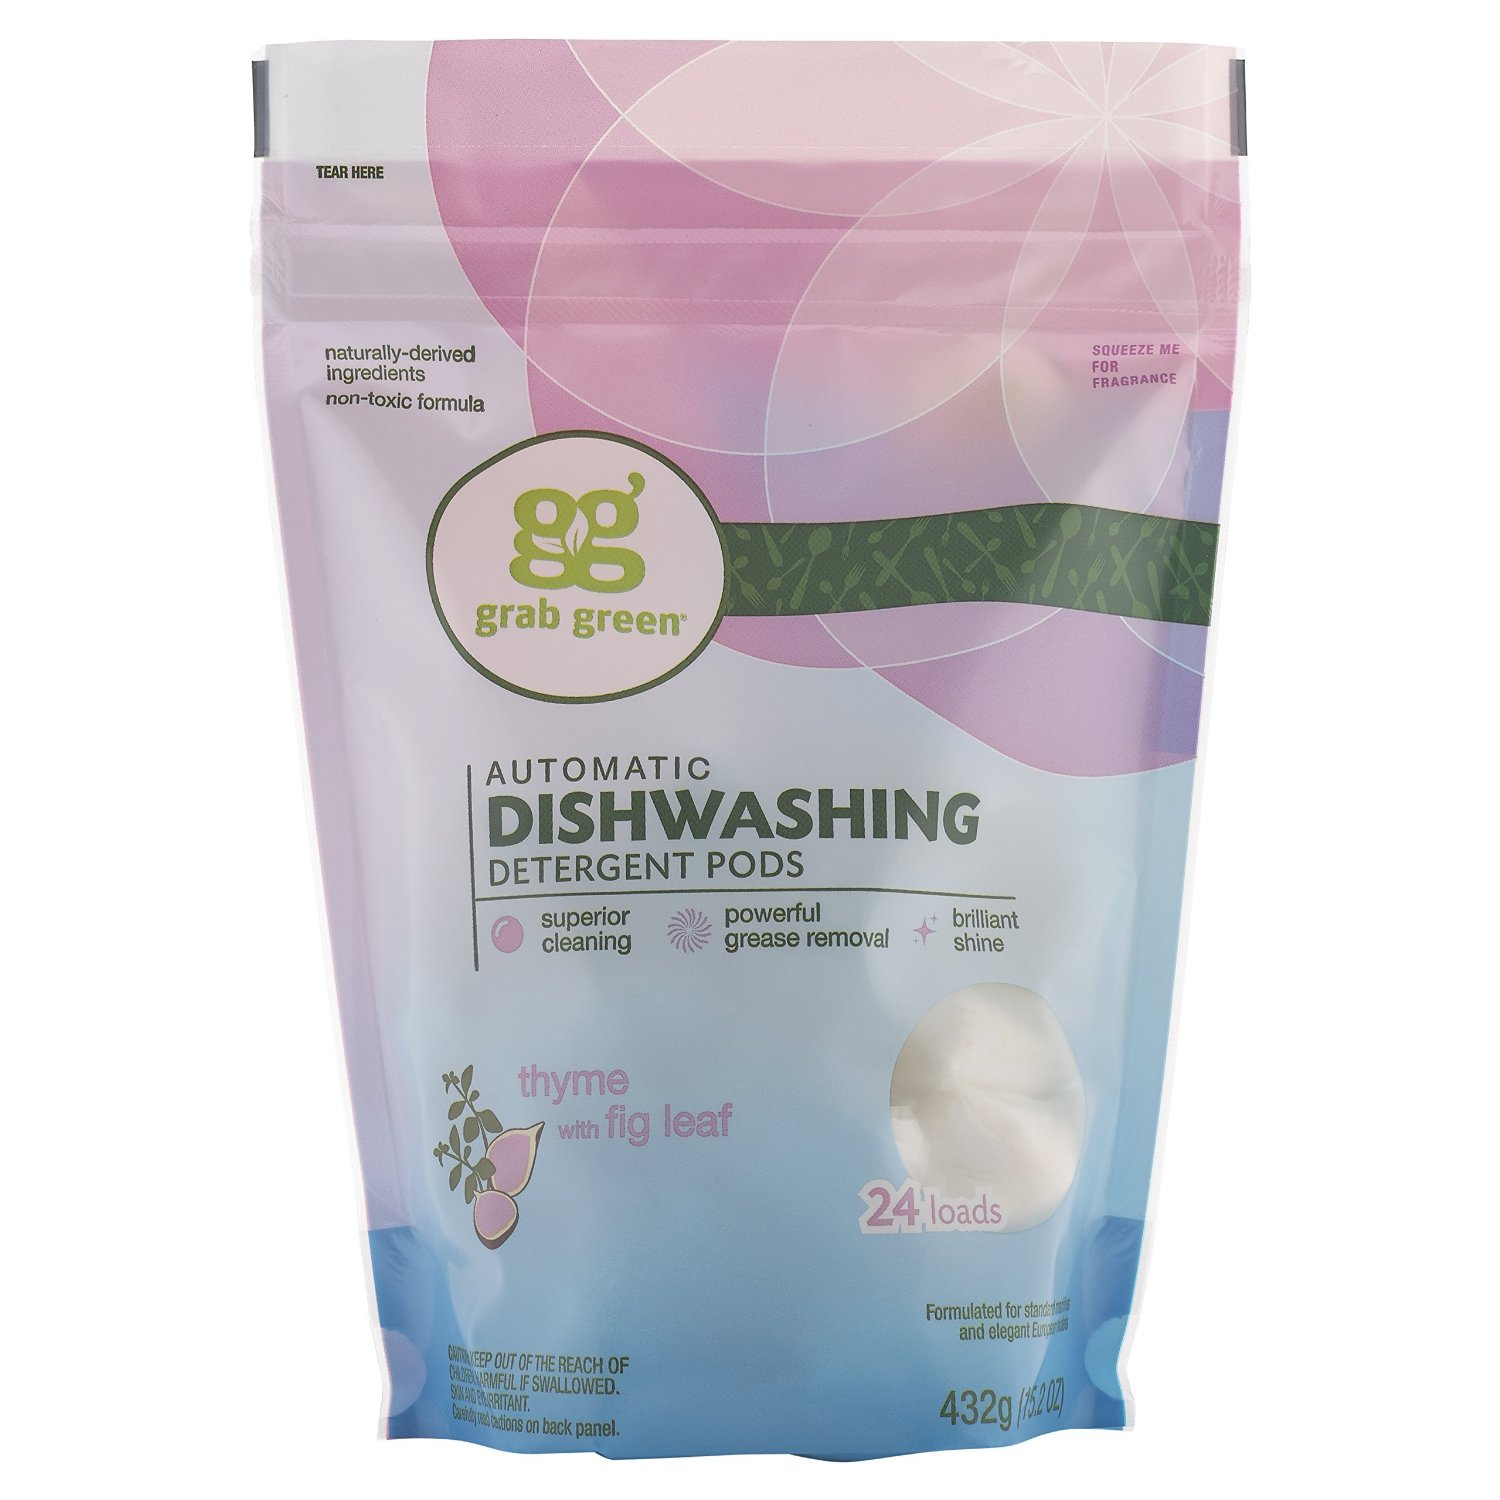 GRAB GREEN: Automatic Dishwashing Thyme with Fig Pouch 24 Loads, 15.2 oz